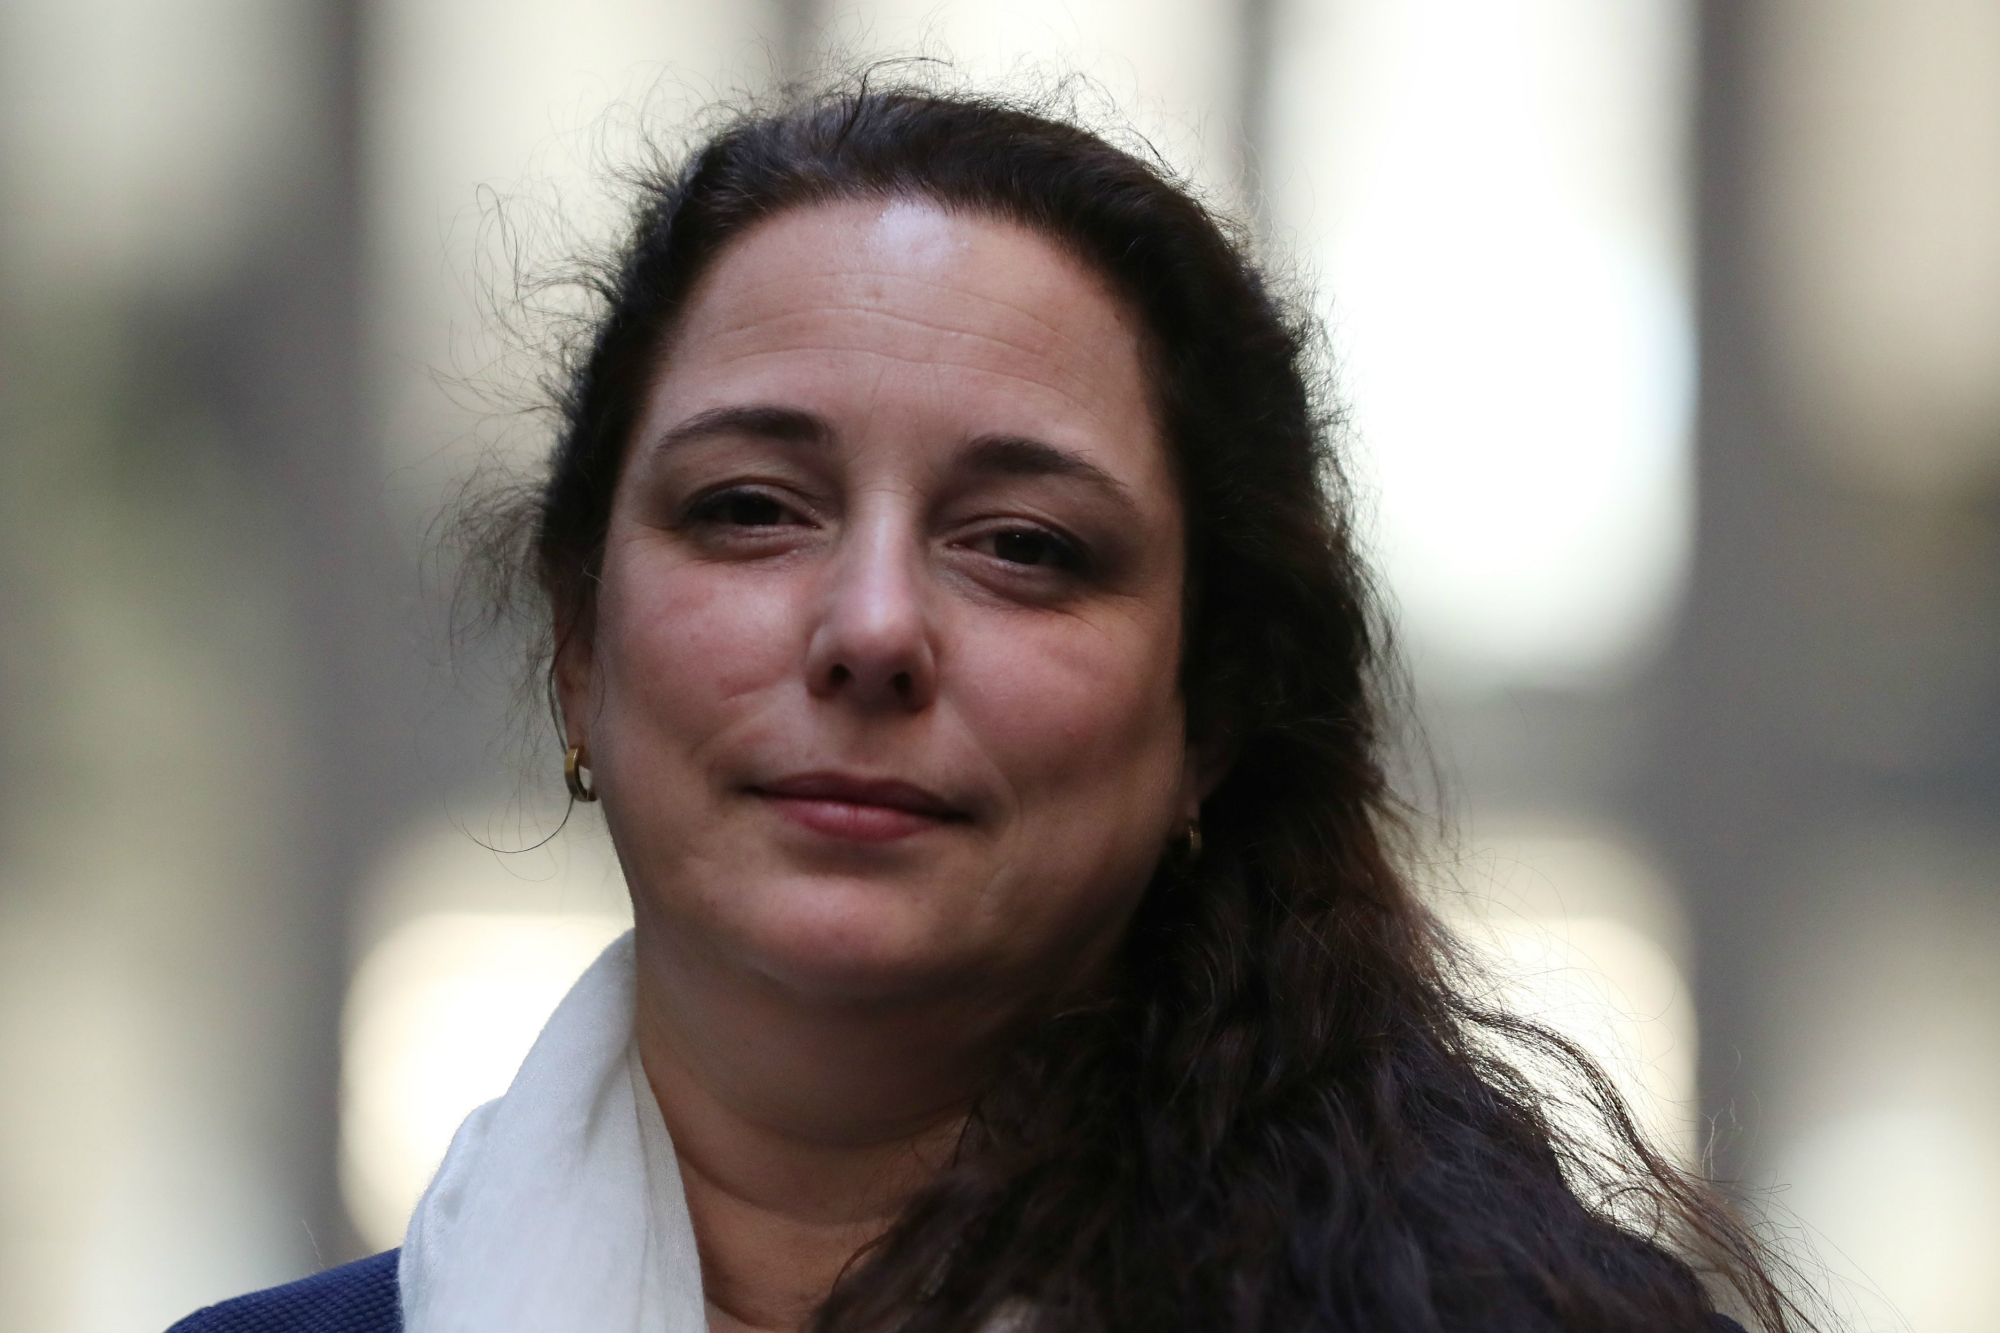 After Protesting for Artistic Freedom, Cuban Authorities Detained Artist Tania Bruguera and Put Her Under House Arrest